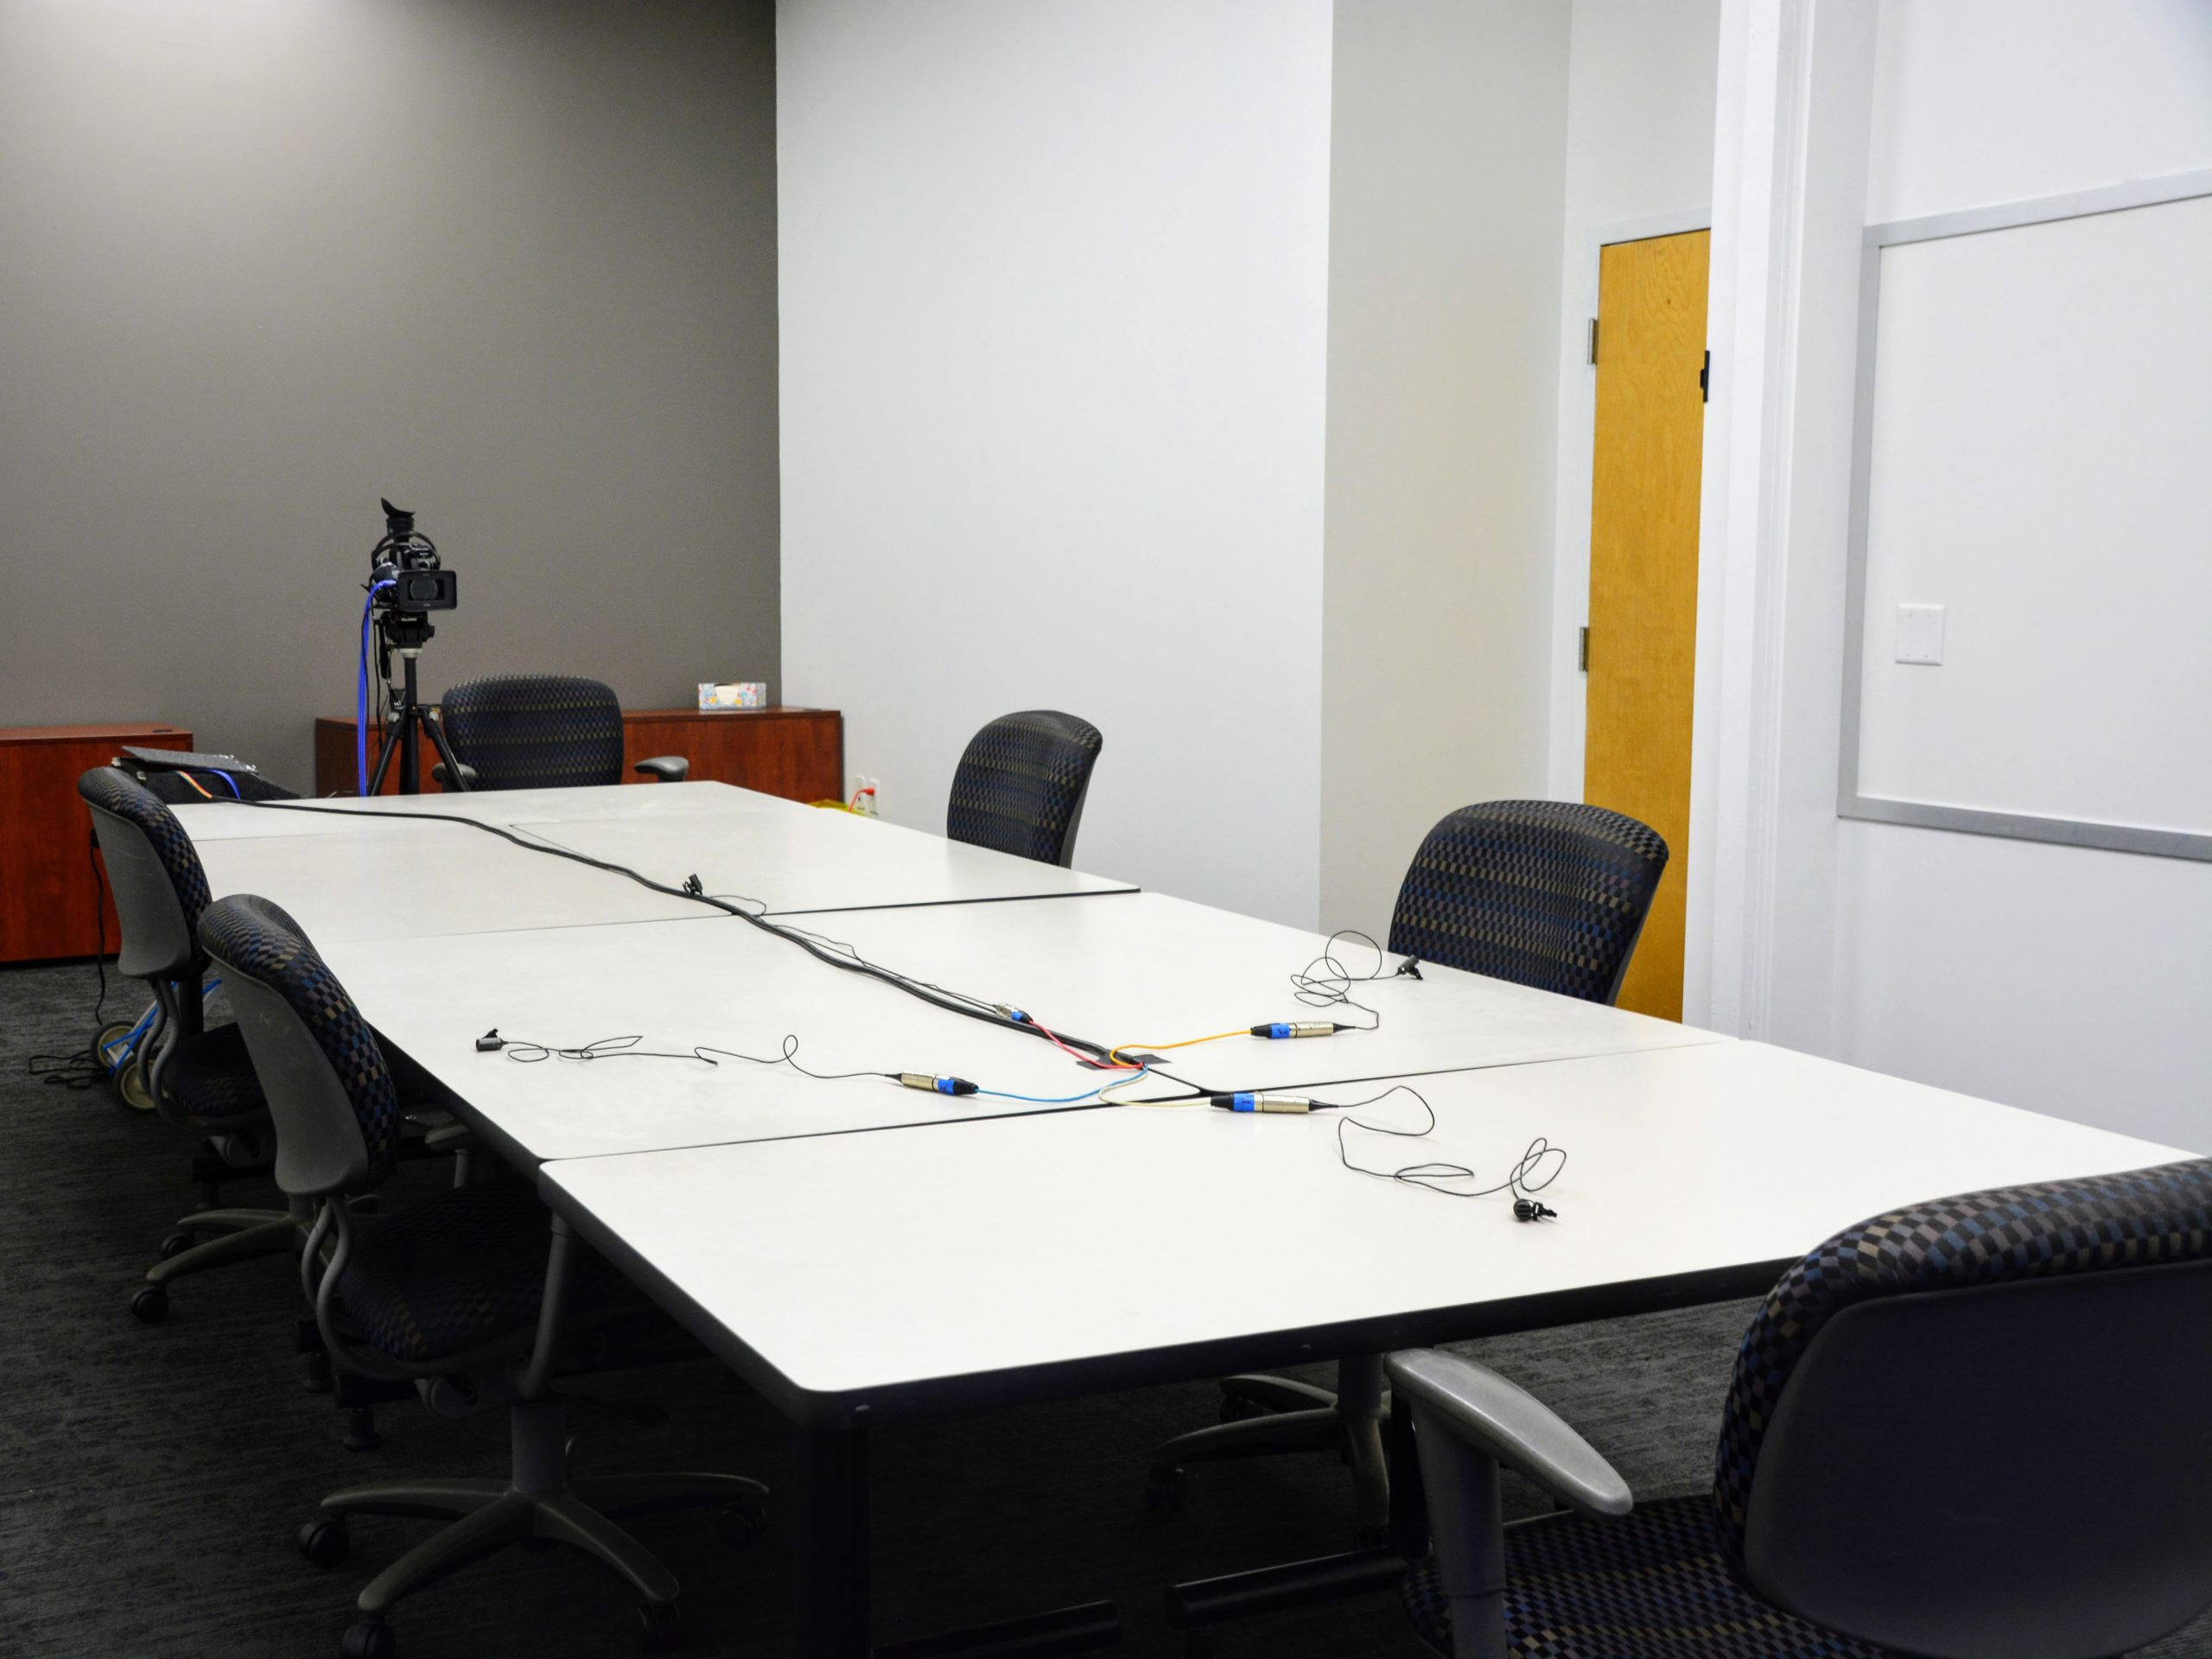 Large conference room for attorneys and legal proceedings